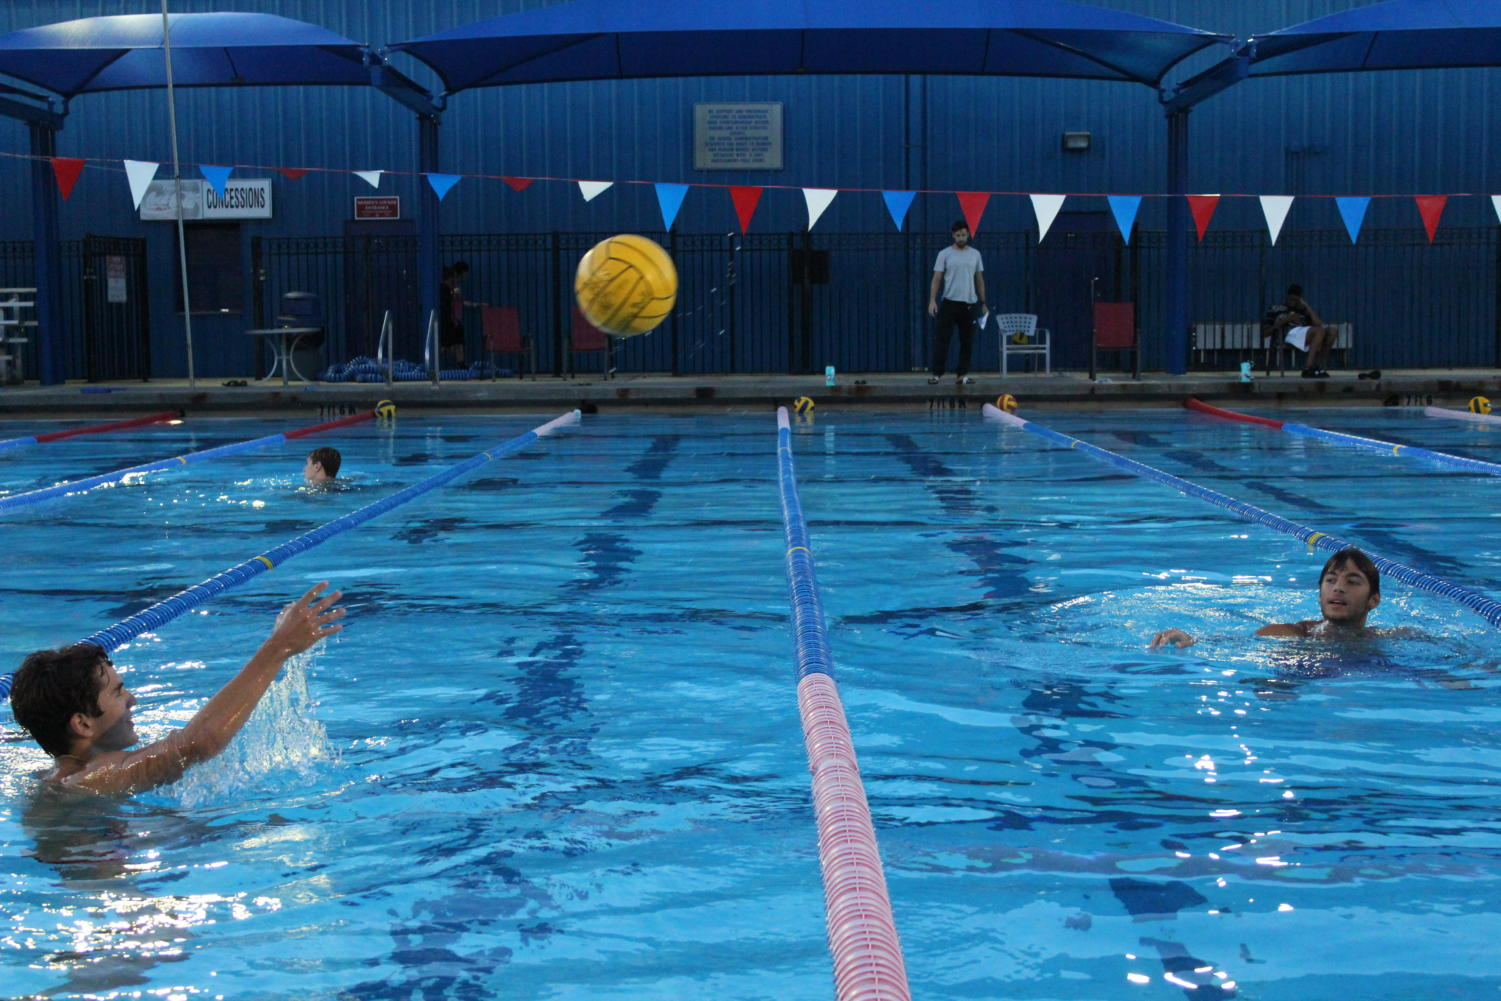 Sophomore+Miles+Banks+starts+passing+and+treading+drills+with+Freshman+Nicholas+Vakordjian+practice+passing+along+lane+lines.+These+passing+drills+are+often+at+the+beginning+of+practice+when+the+lane+lines+are+in+the+water.+This+is+so+players+can+tread+up+and+down+along+the+pool+while+passing.+